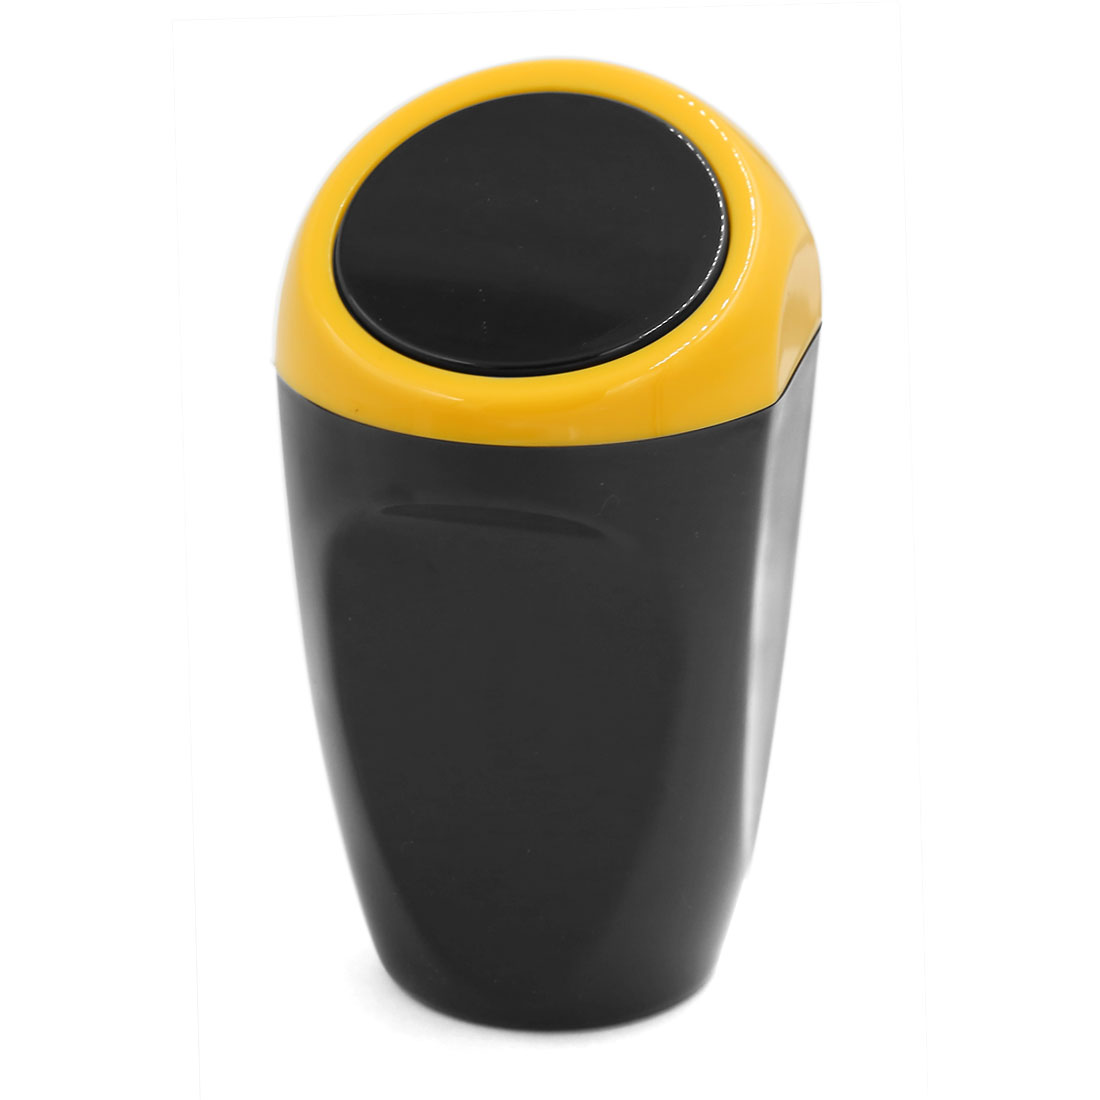 Auto Car Plastic Trash Rubbish Bin Can Garbage Dust Case Holder 14.5cm Height